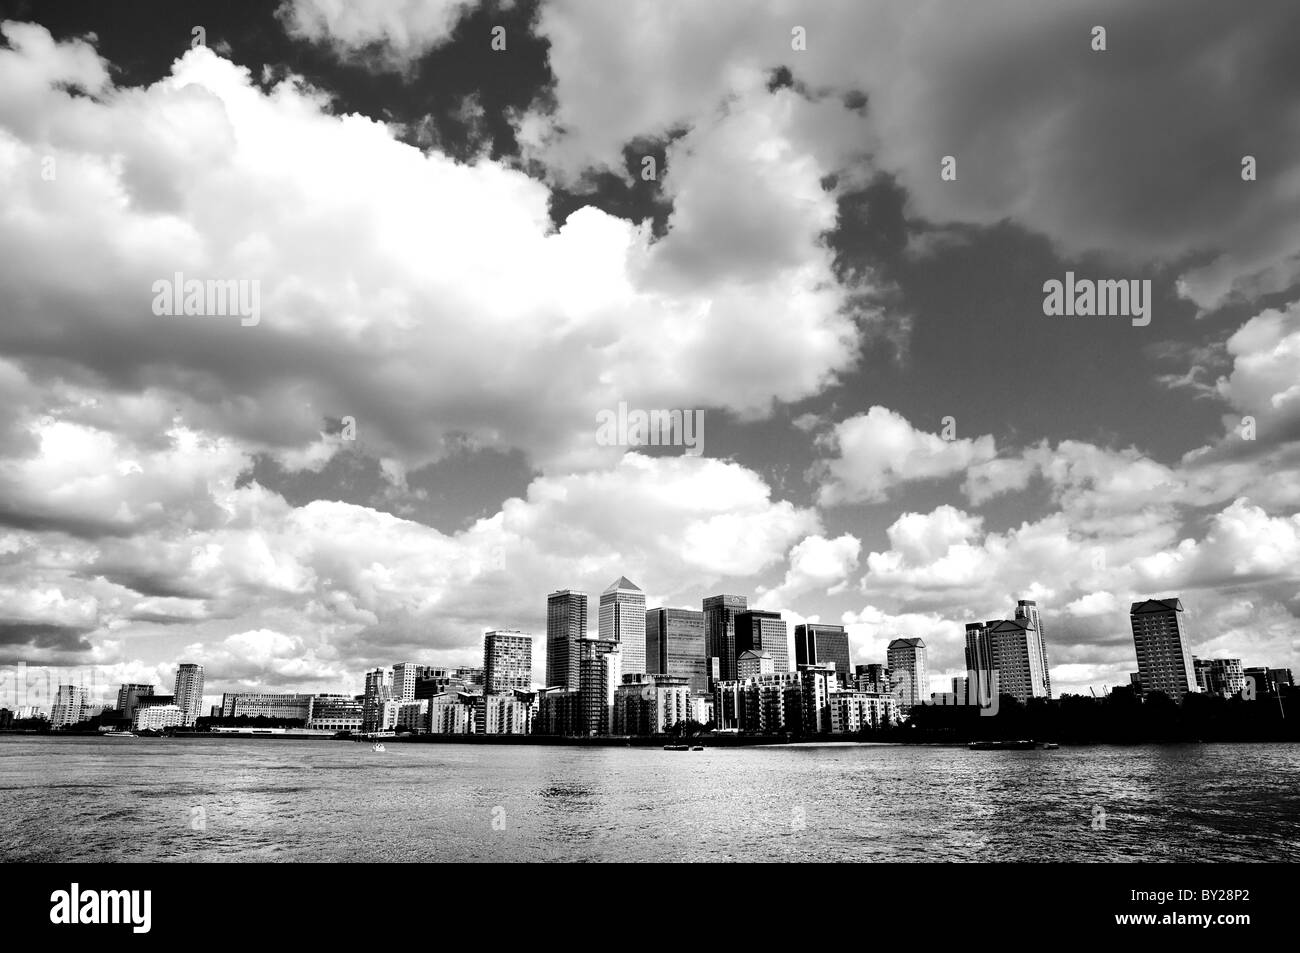 Canary Wharf London Docklands - Stock Image